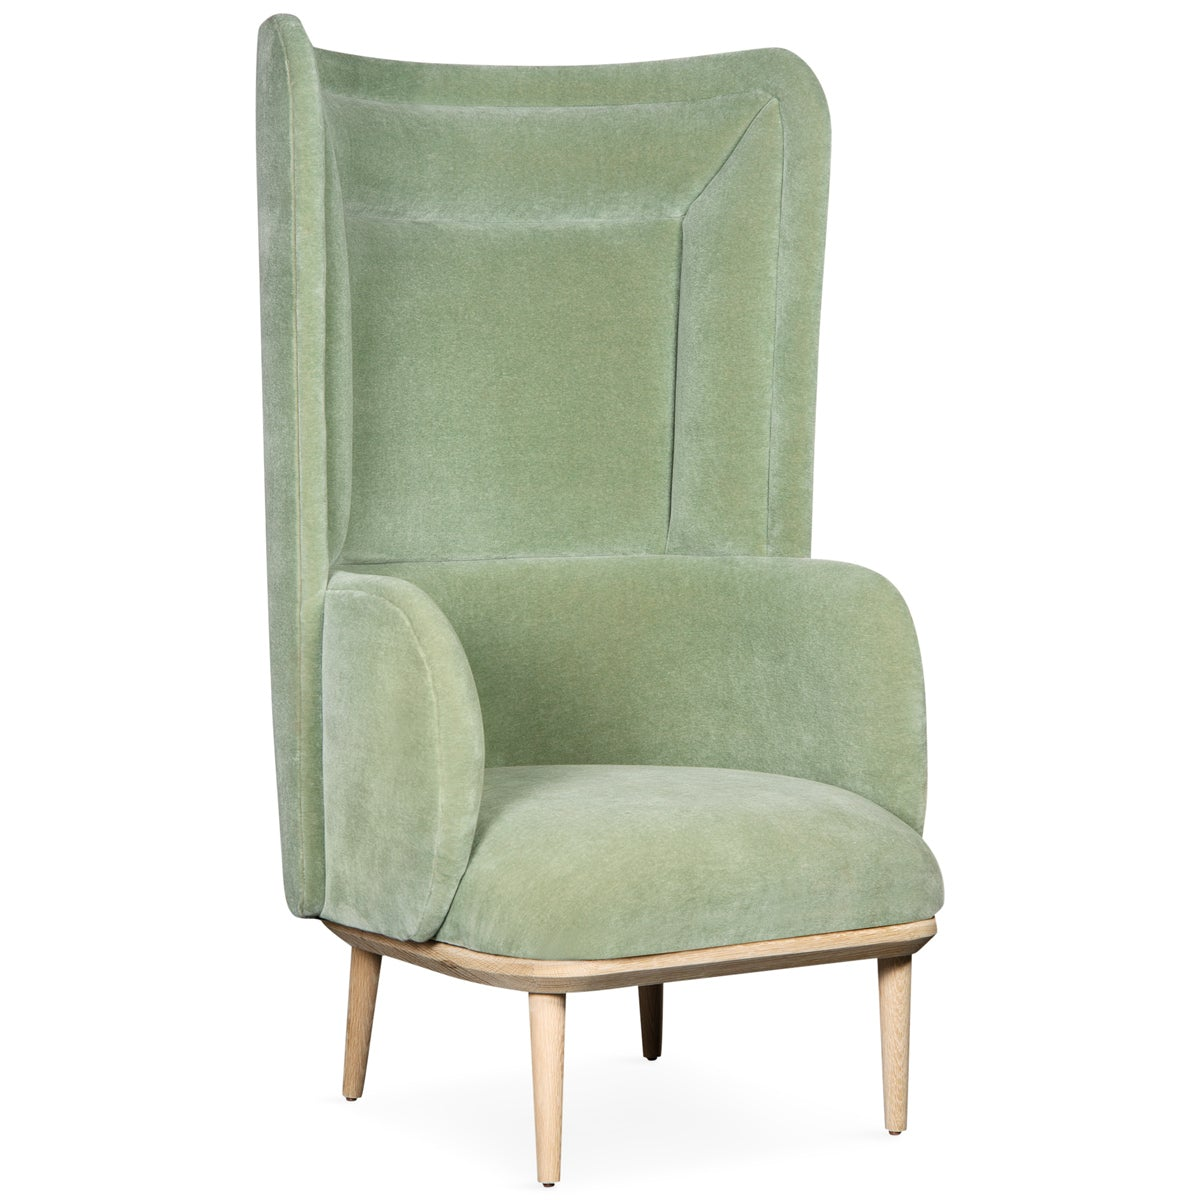 Copenhagen 2 Wing Chair - ModShop1.com